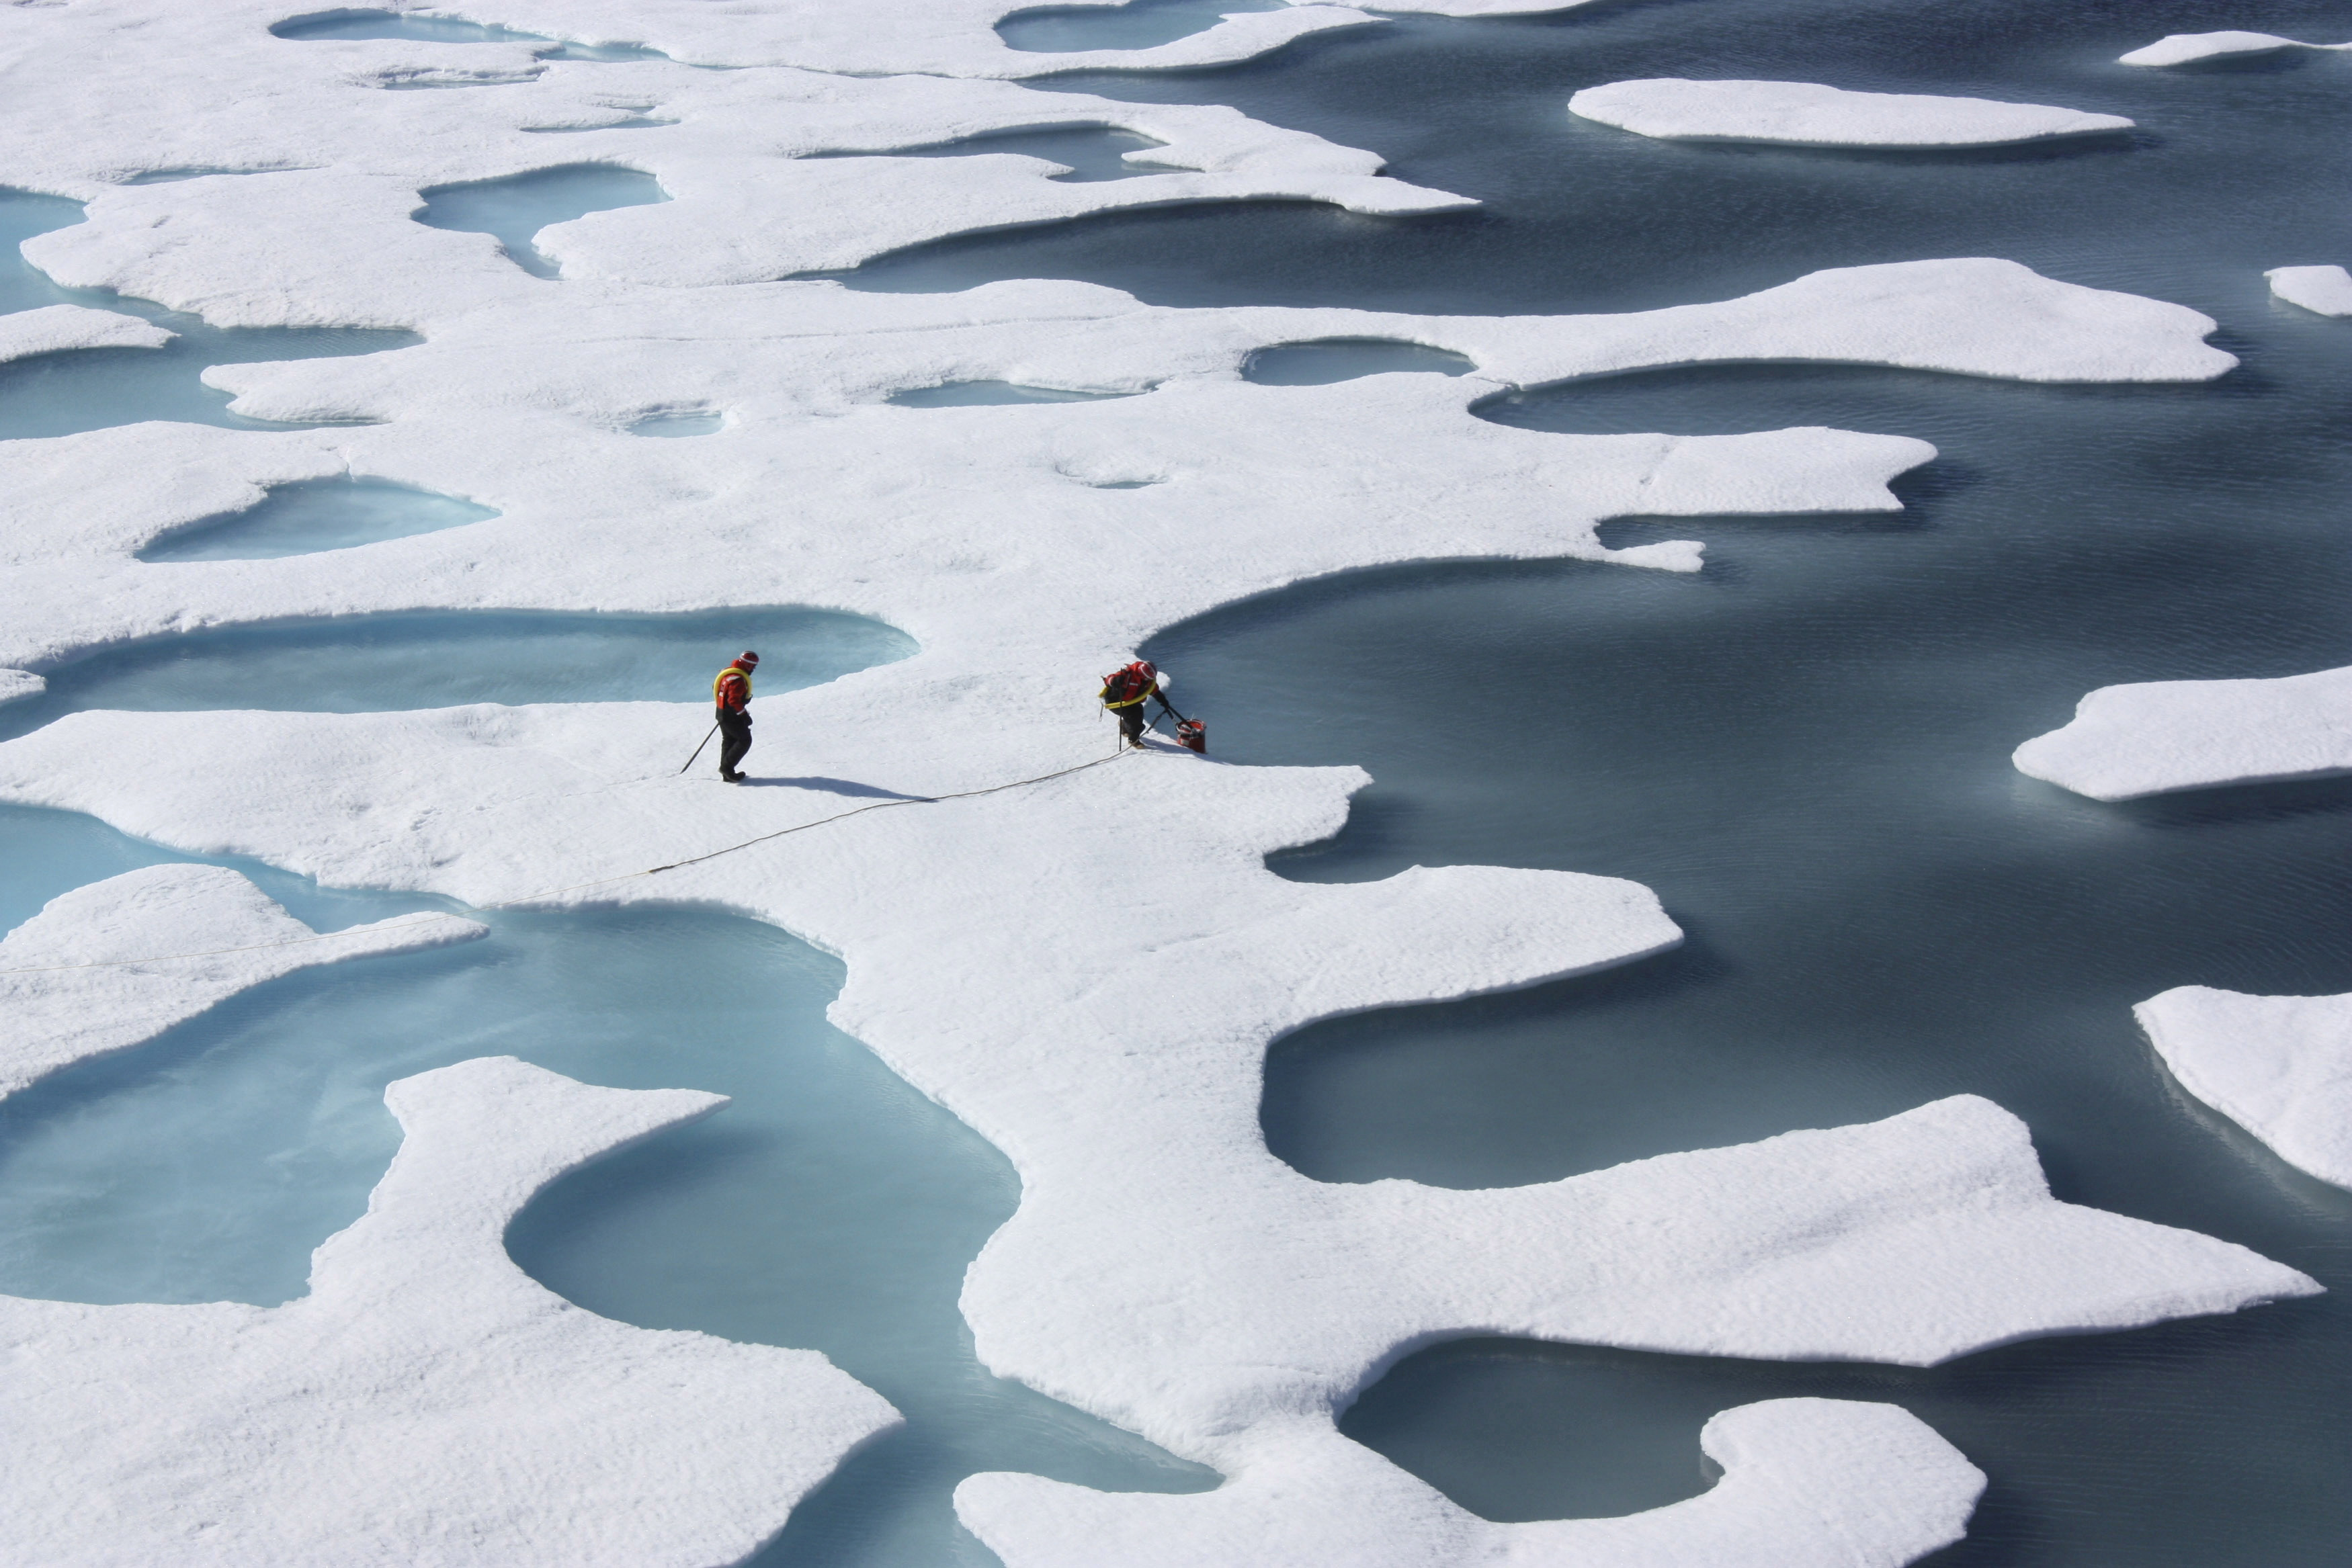 FILE - The crew of the  U.S. Coast Guard Cutter Healy, in the midst of their ICESCAPE mission to study sea ice, retrieves supplies in the Arctic Ocean, July 12, 2011.